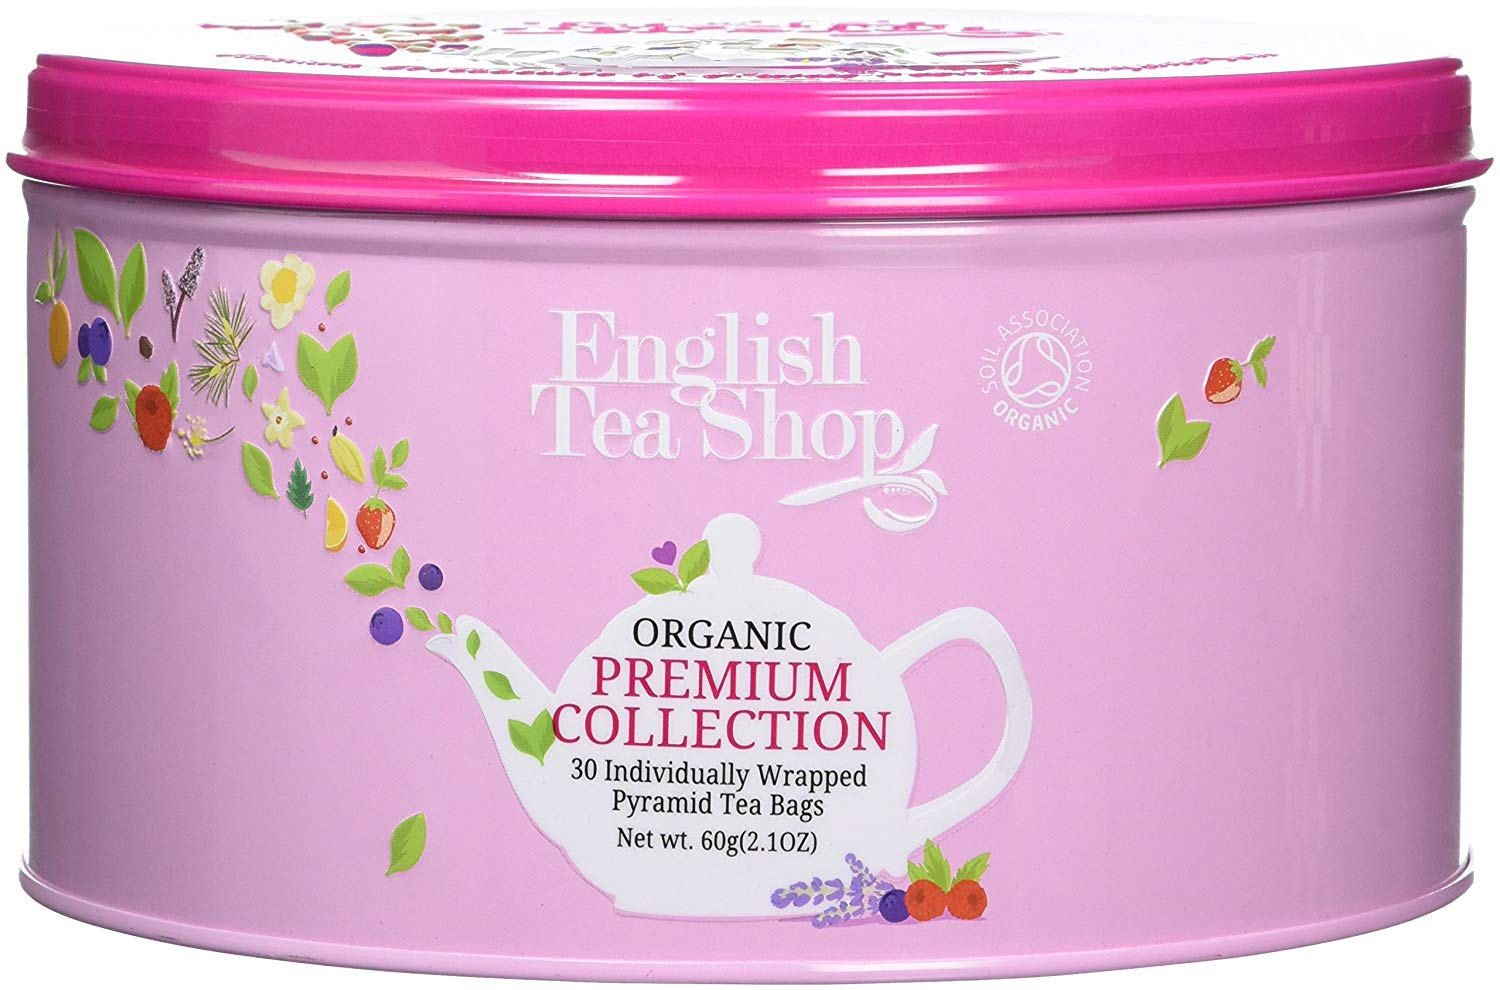 English Tea Shop Round Assortment Pink Nylon Pyramid Tin, 30 ct